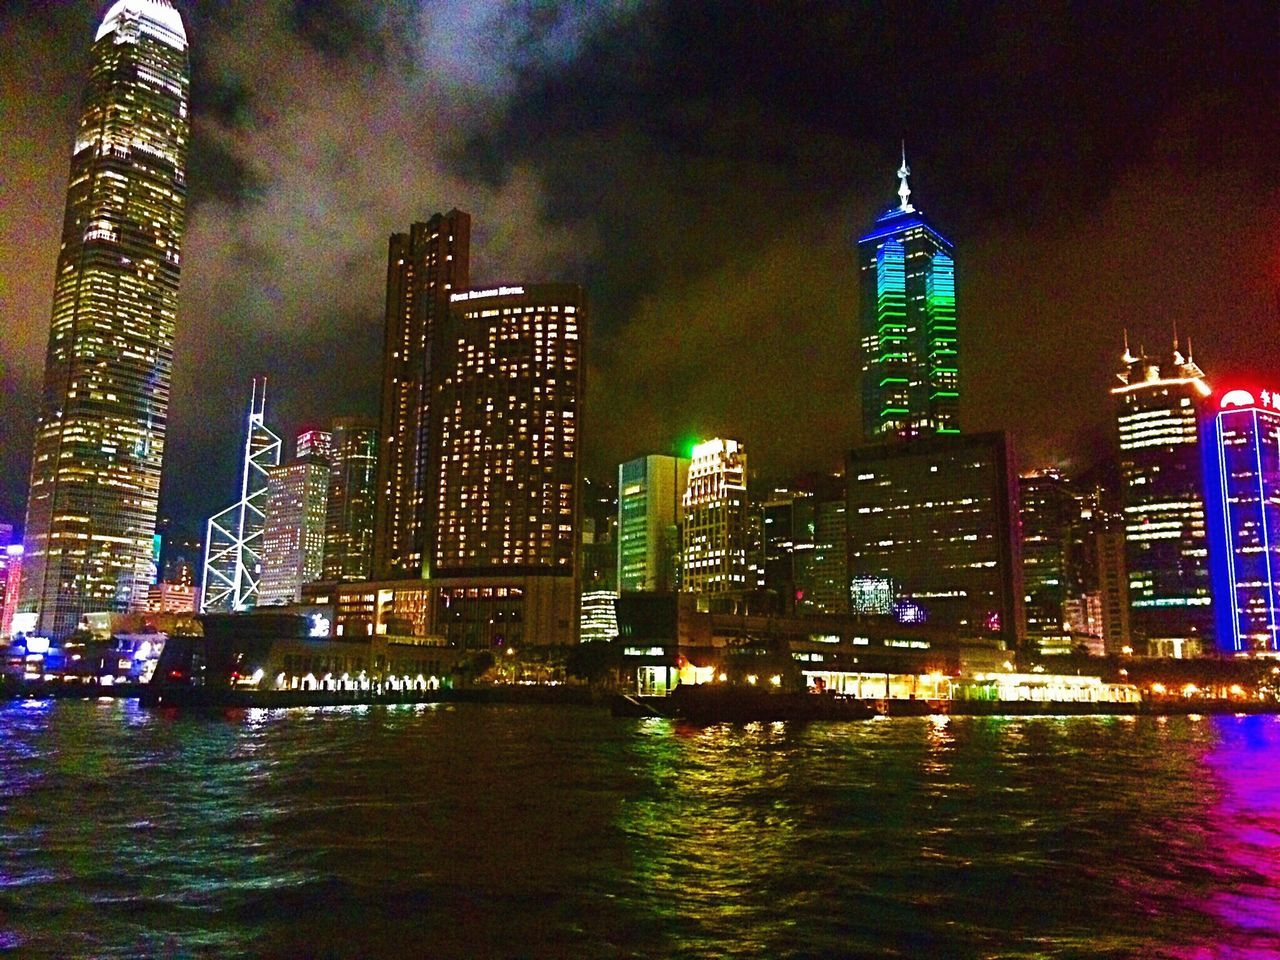 architecture, skyscraper, building exterior, illuminated, tall - high, built structure, night, waterfront, travel destinations, city, tower, cityscape, modern, sky, river, urban skyline, water, outdoors, no people